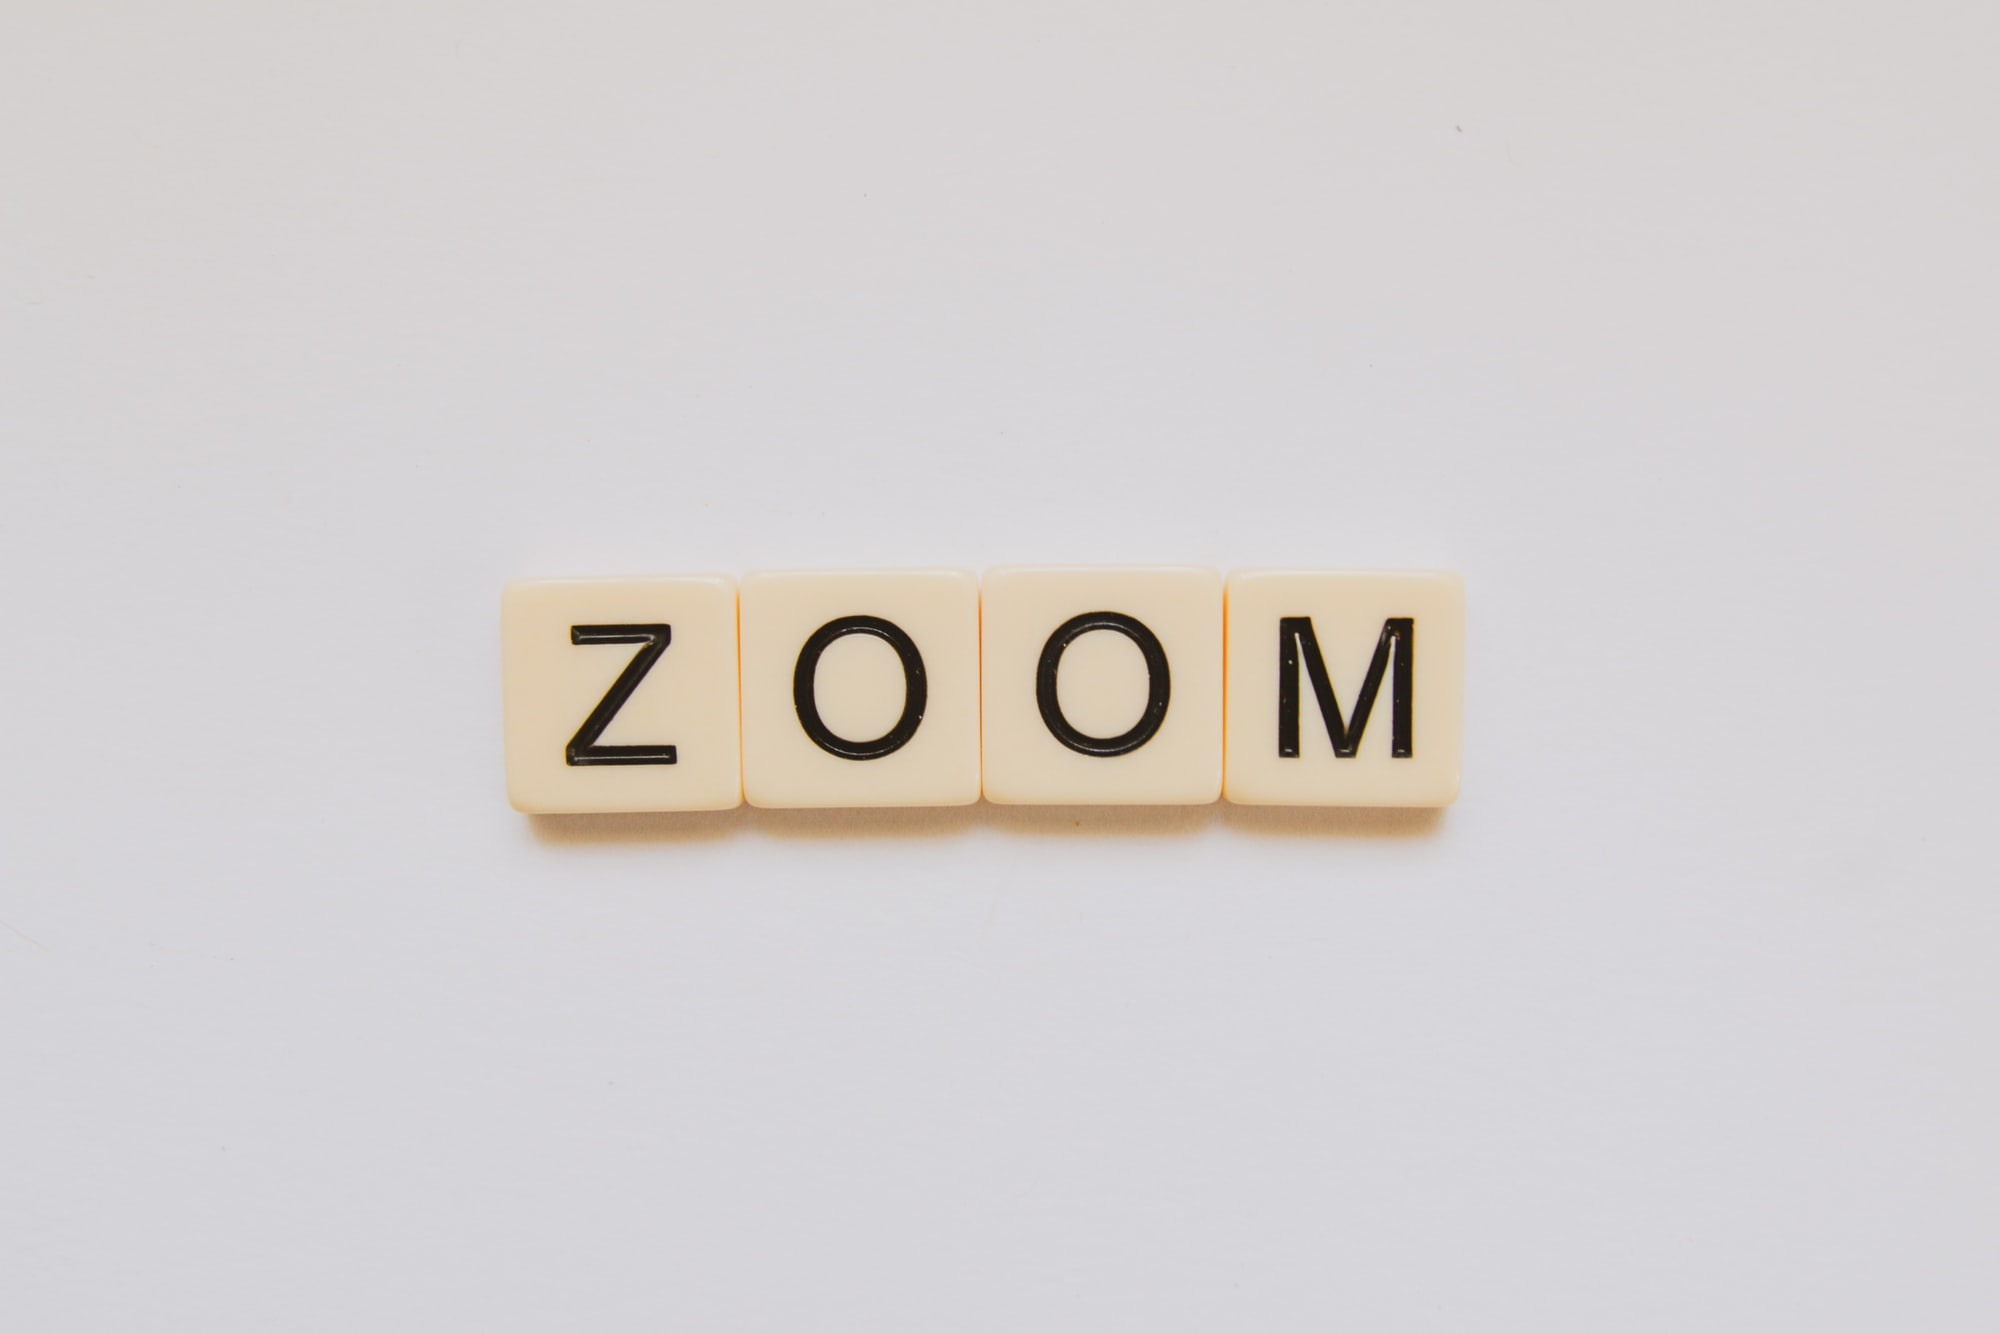 Collecting payments on Zoom for webinars, lessons or consulting.